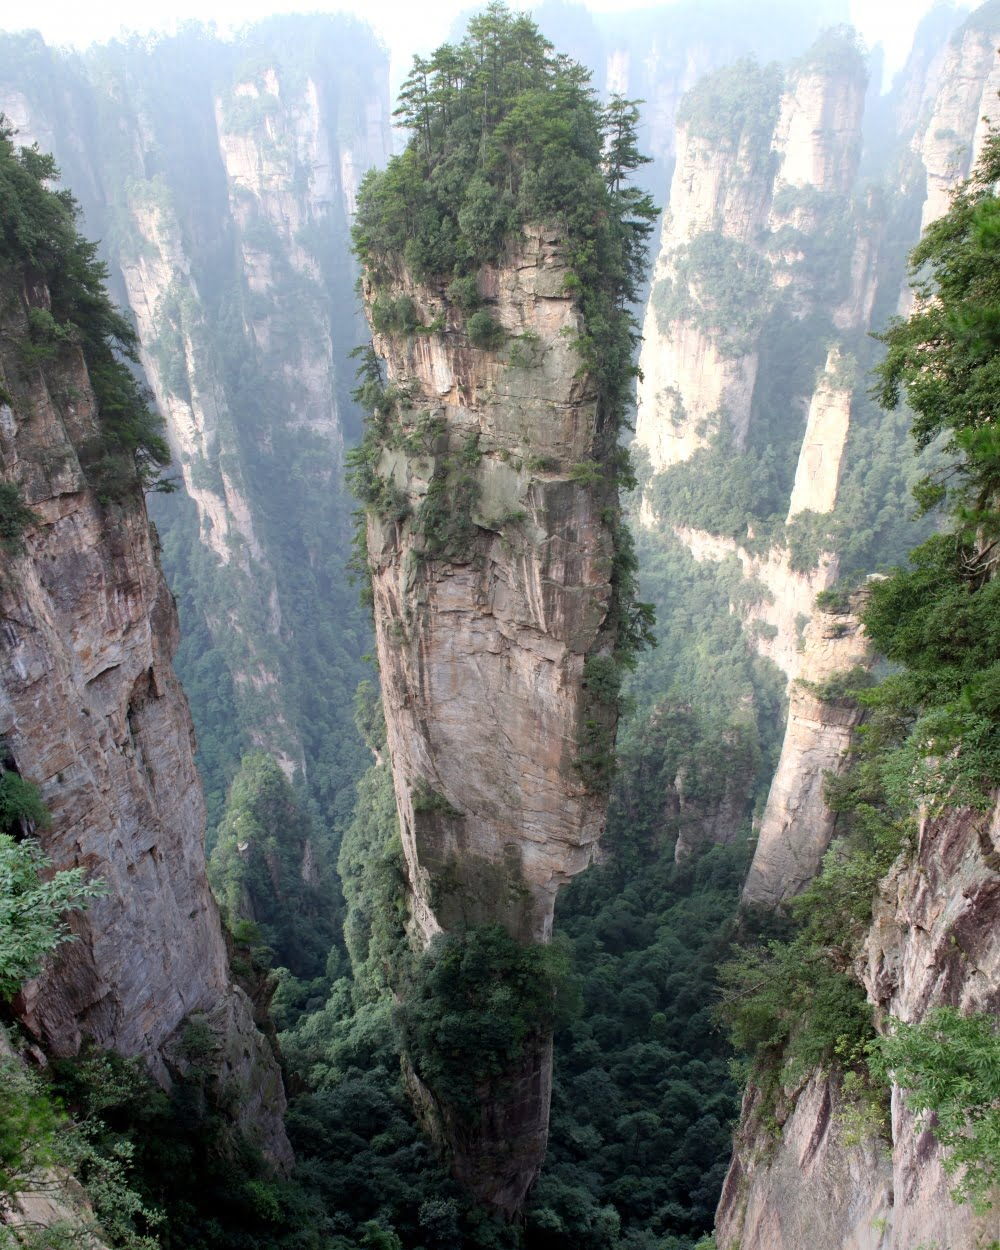 tianzi-mountain-china-inspiration-for-the-landscapes-of-pandora-in-avatar